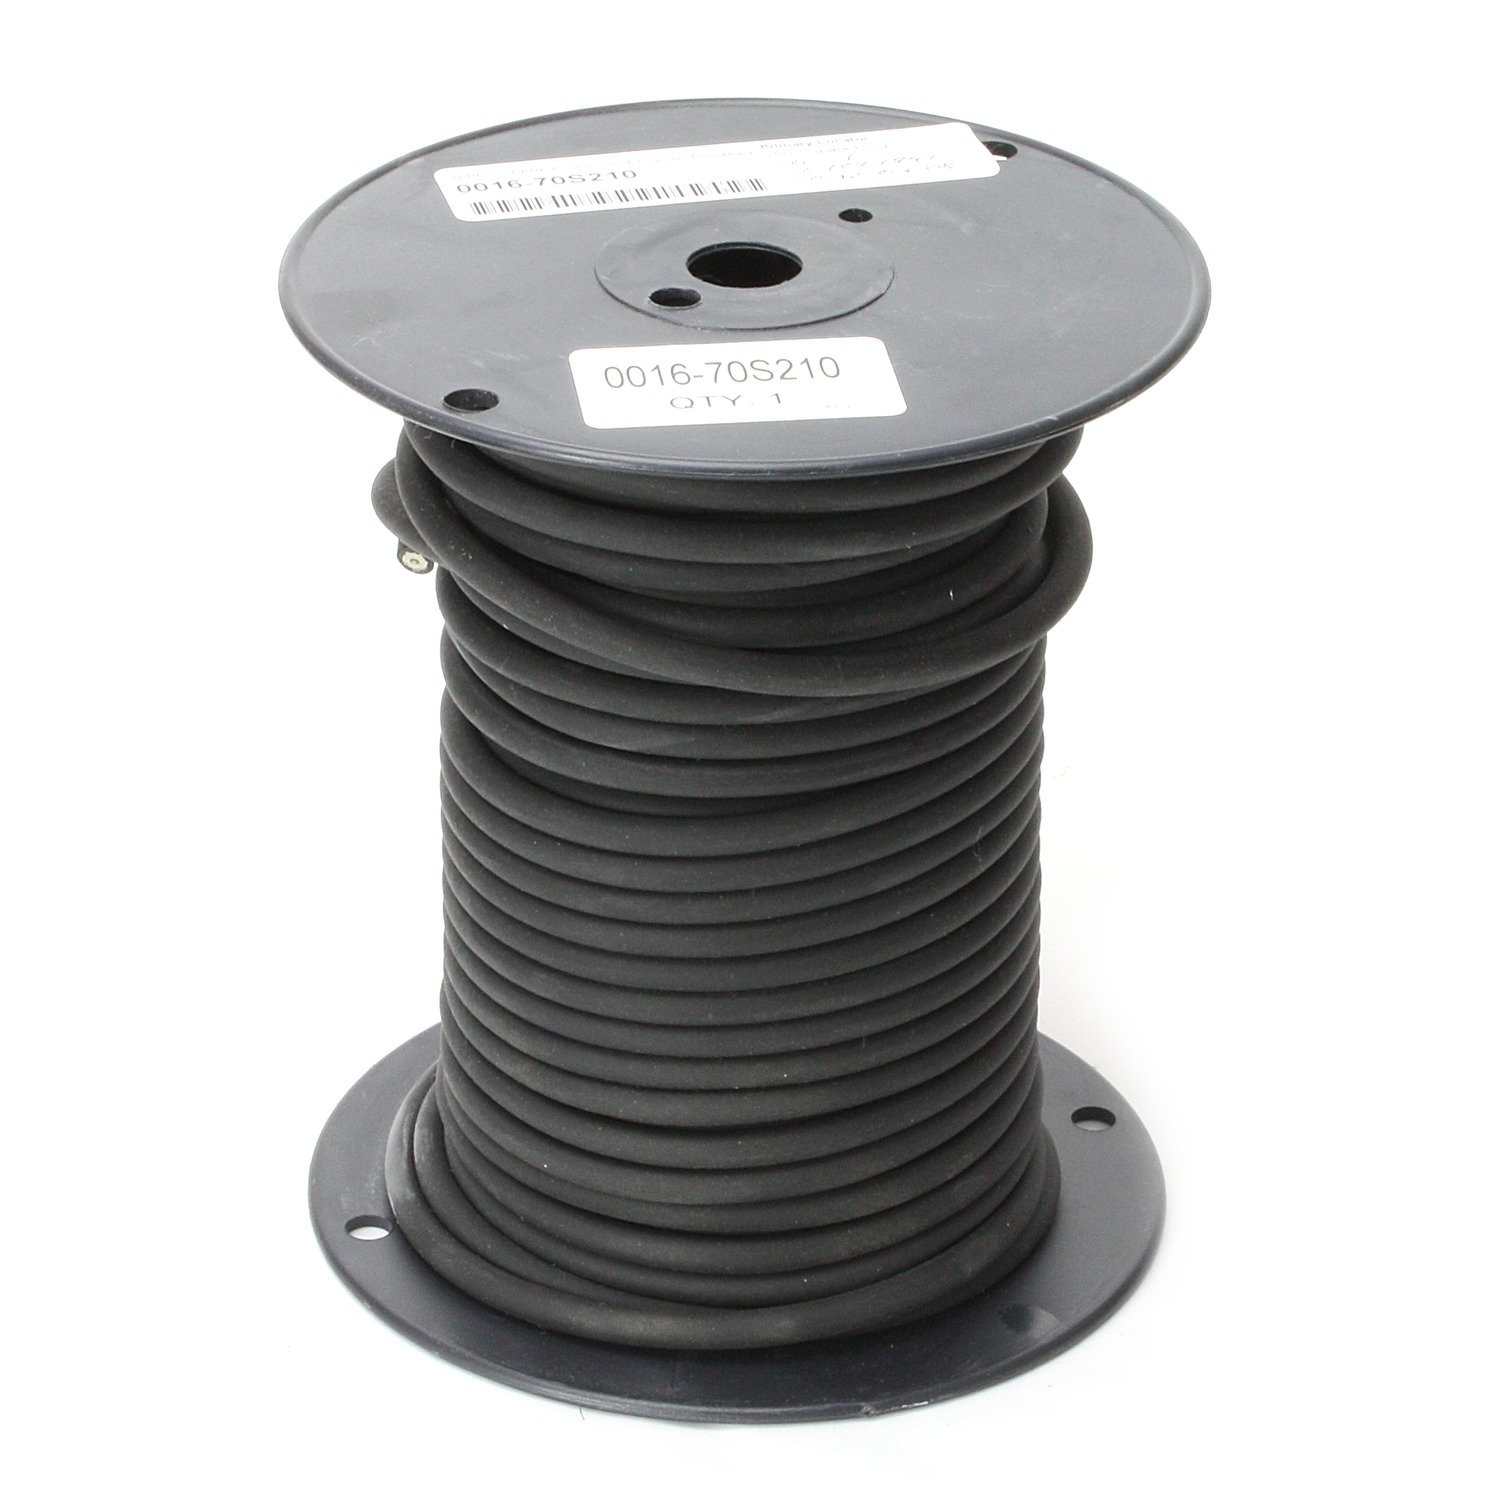 Amazon.com: Pertronix 70S210 Flame-Thrower Black 7mm Spark Plug Wire ...